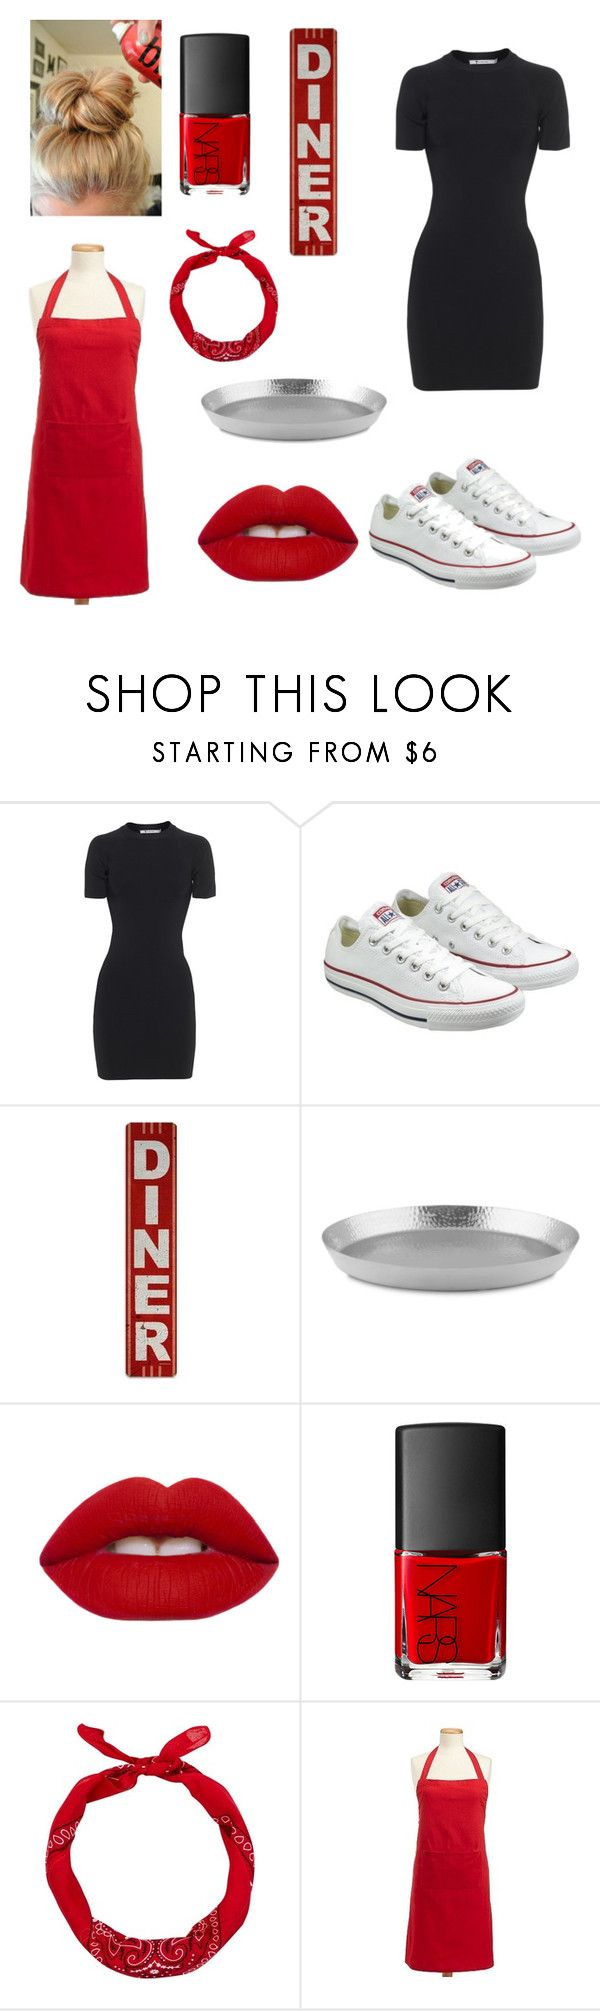 """waitress outfit"" by ellenkerry21 ❤ liked on Polyvore featuring T By Alexander Wang, Converse, Lime Crime, NARS Cosmetics and Design Imports"